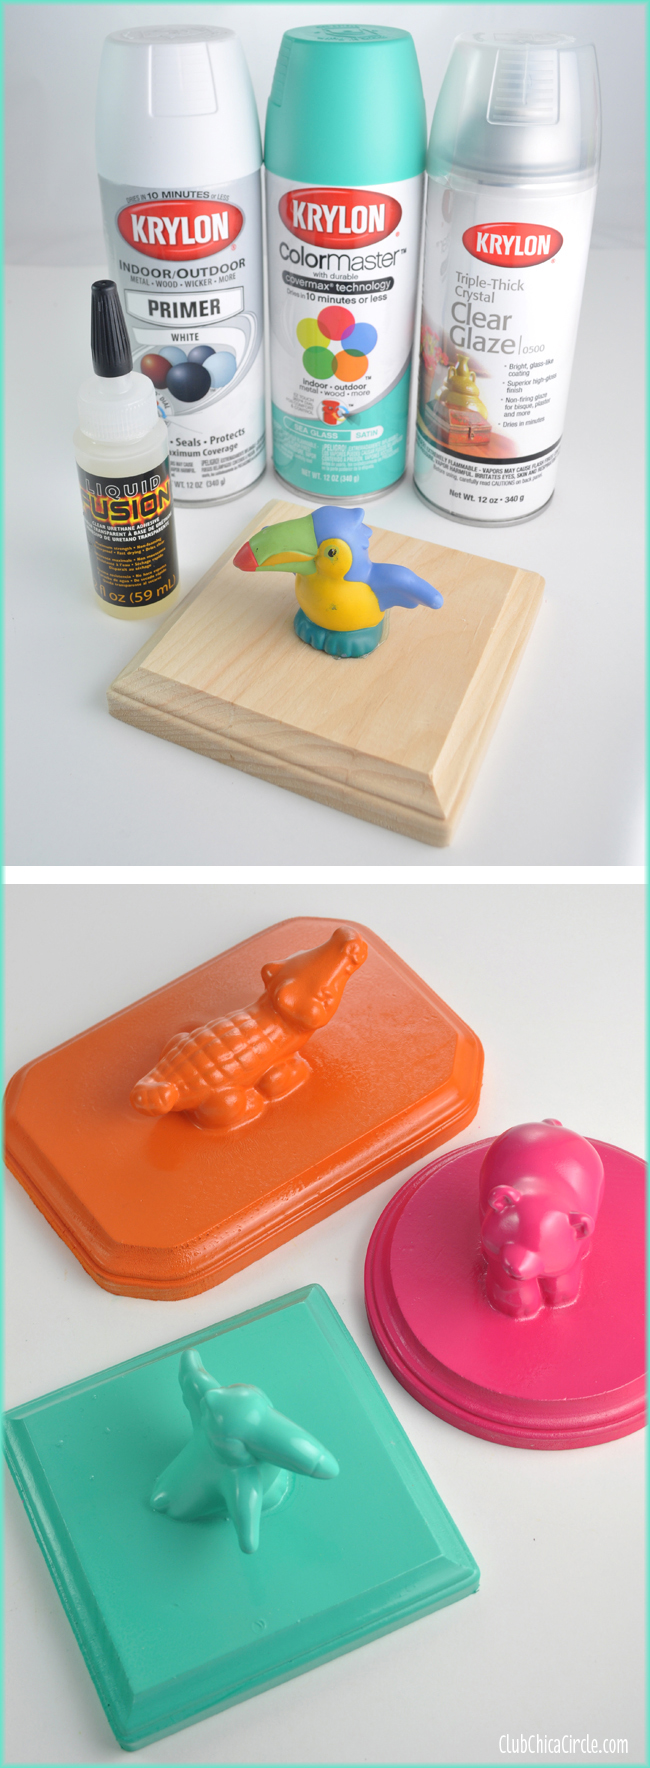 little people toy upcycled jewelry organizers